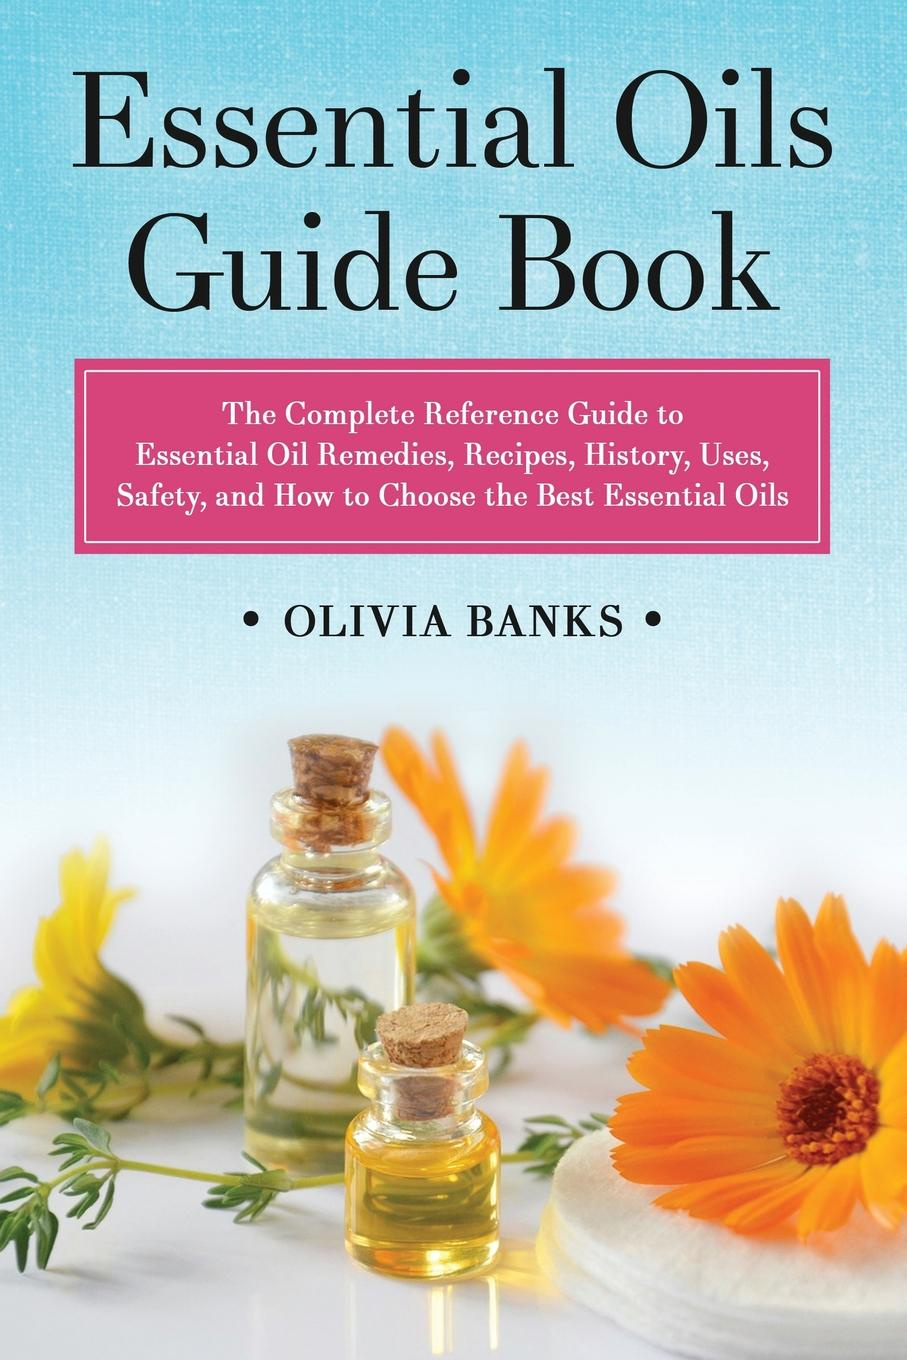 Olivia Banks Essential Oils Guide Book. The Complete Reference Guide to Essential Oil Remedies, Recipes, History, Uses, Safety, and How to Choose the Best Essential Oils denise williams essential oils bible the complete guide for aromatherapy